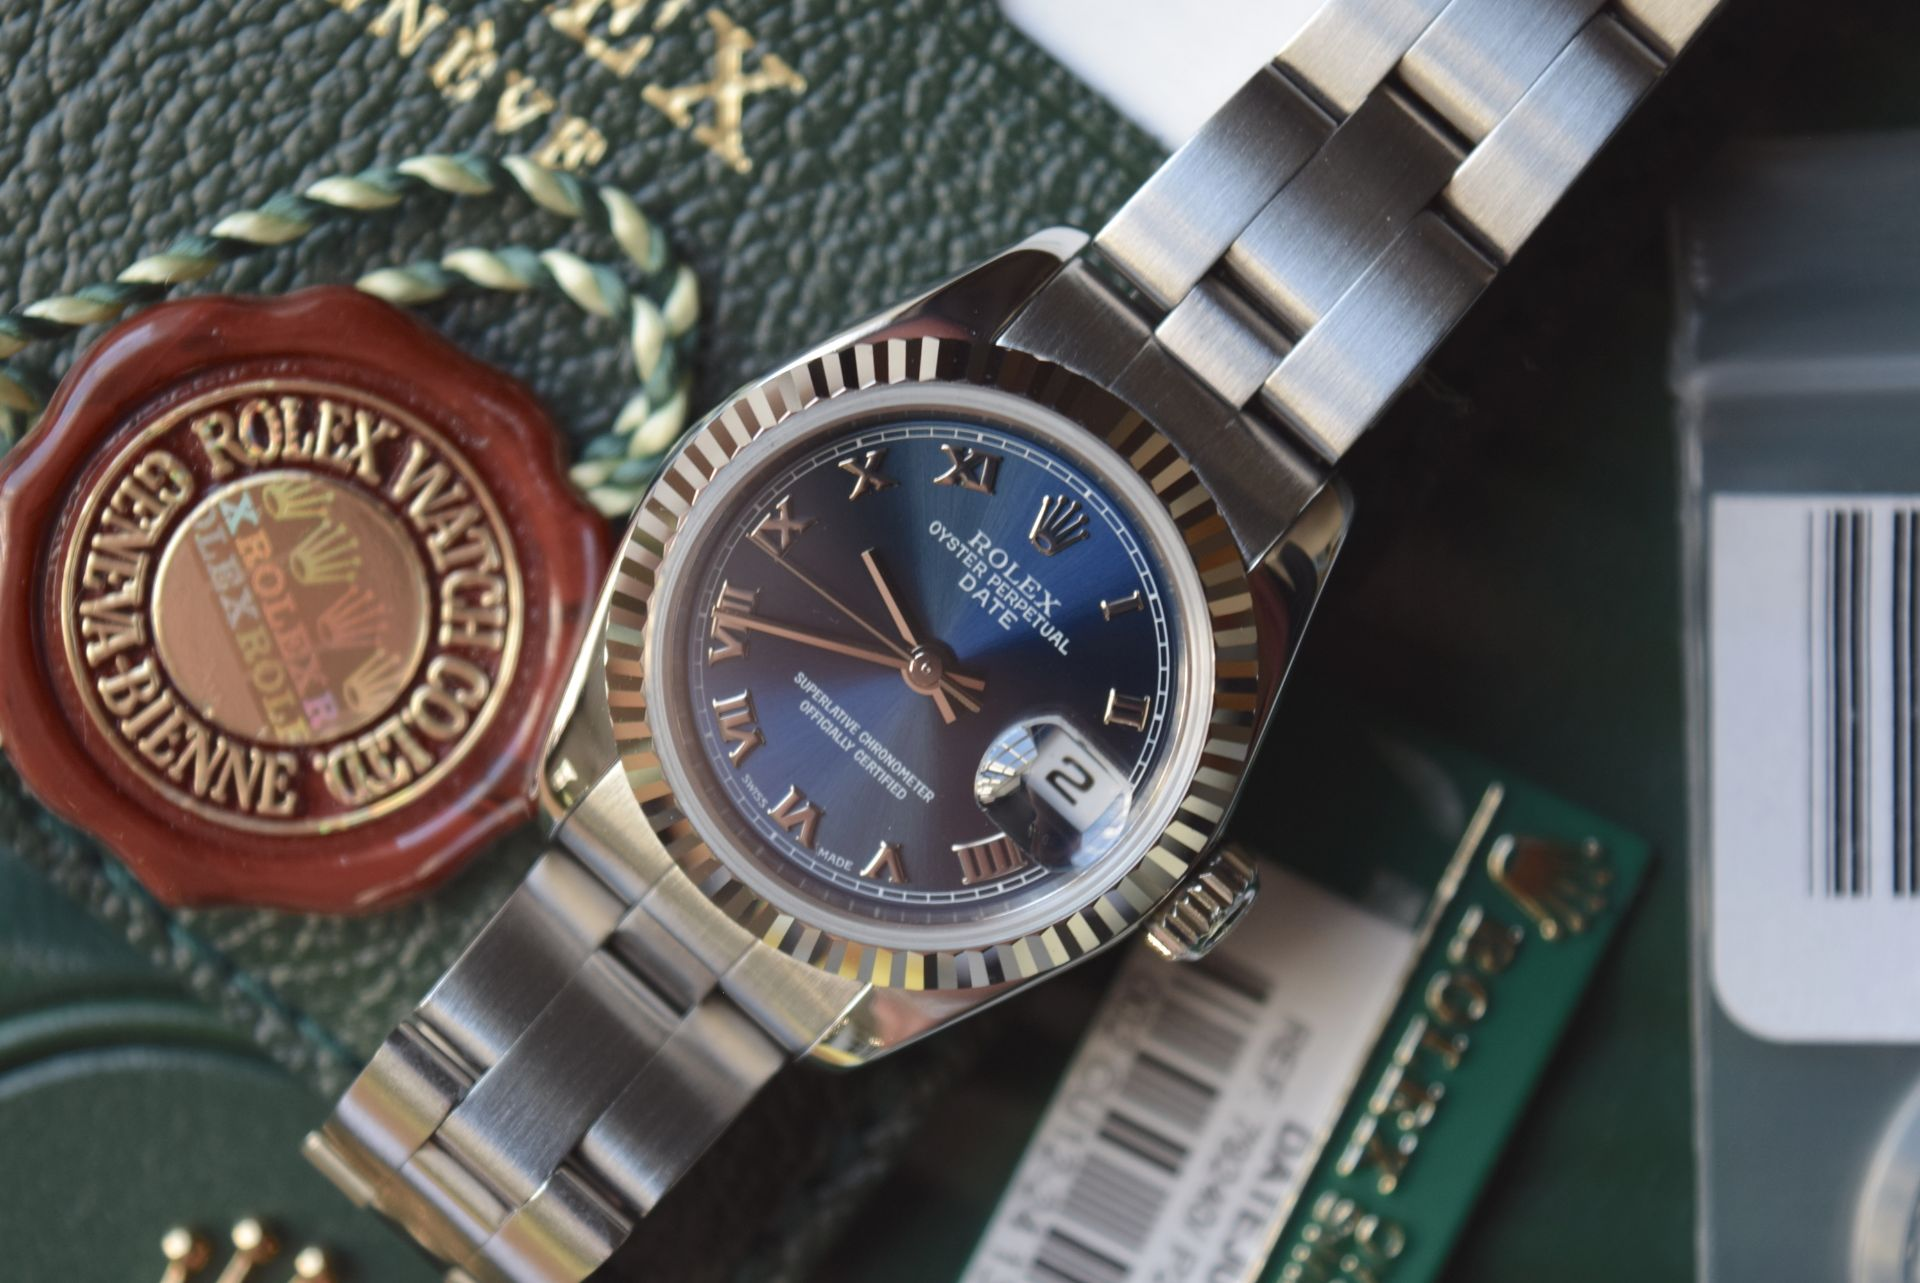 *FULL SET* ROLEX DATEJUST (LADIES) STEEL & 18CT WHITE GOLD - NAVY BLUE 'ROMAN NUMERAL' DIAL - Image 10 of 19